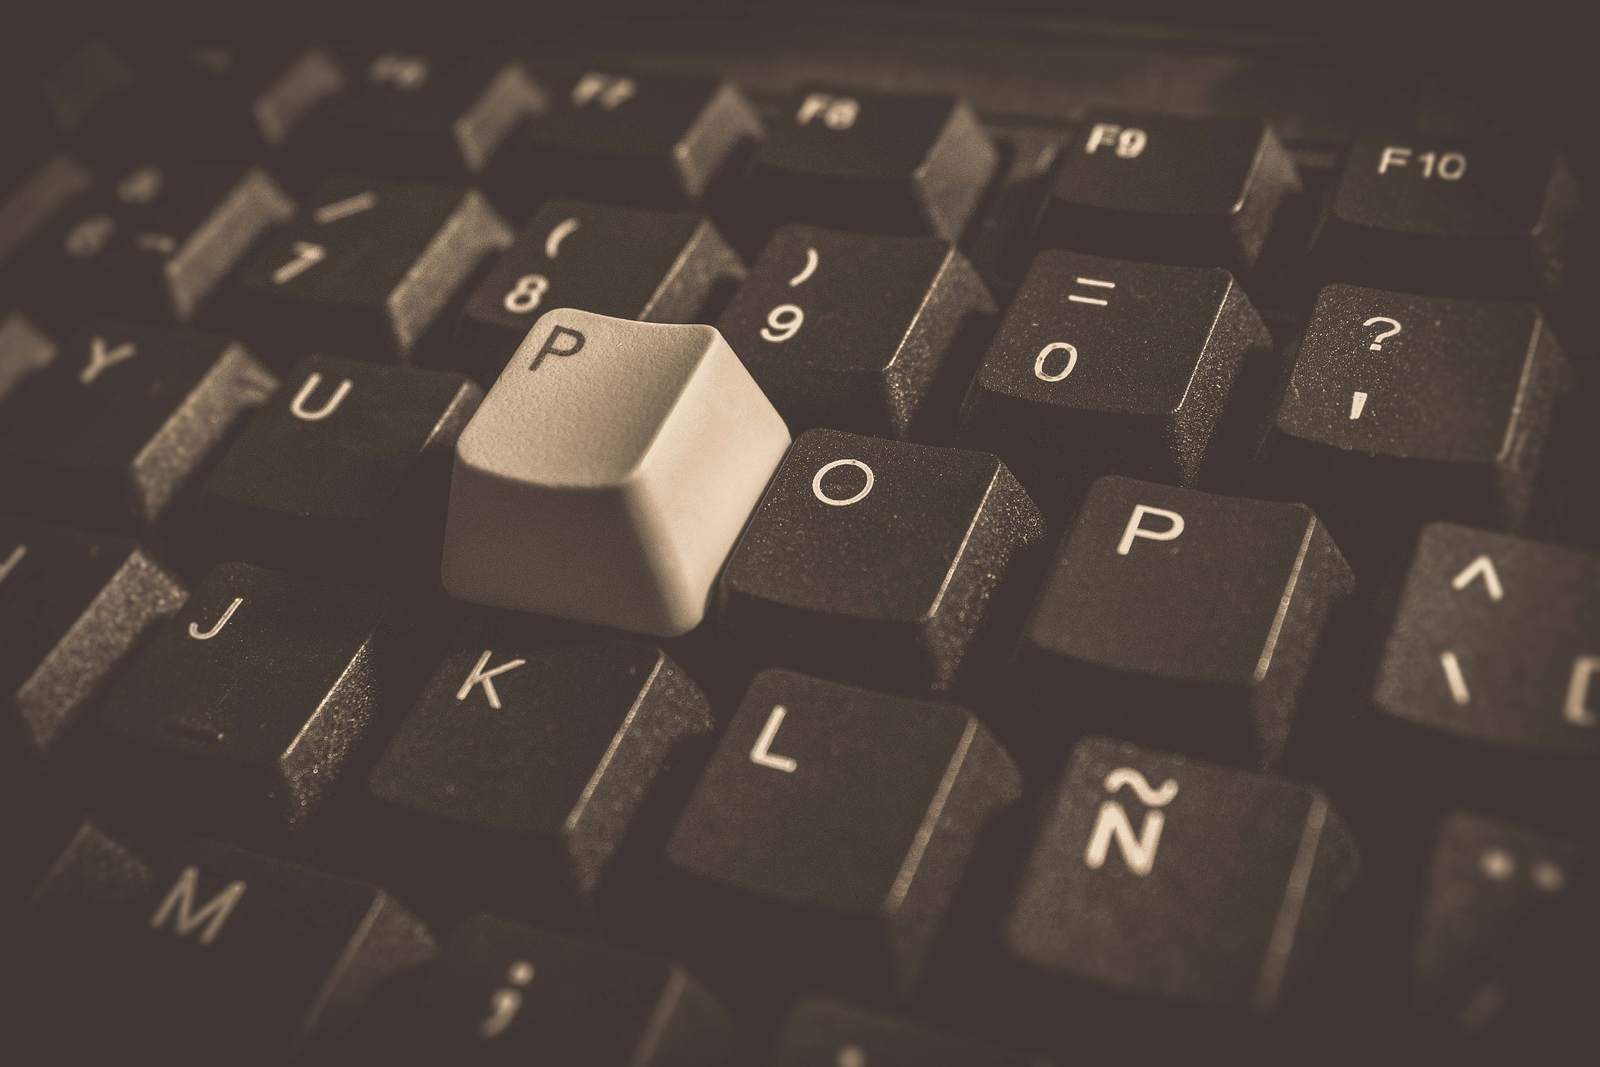 Stock image of keyboard. Conexant keylogger notwithstanding.